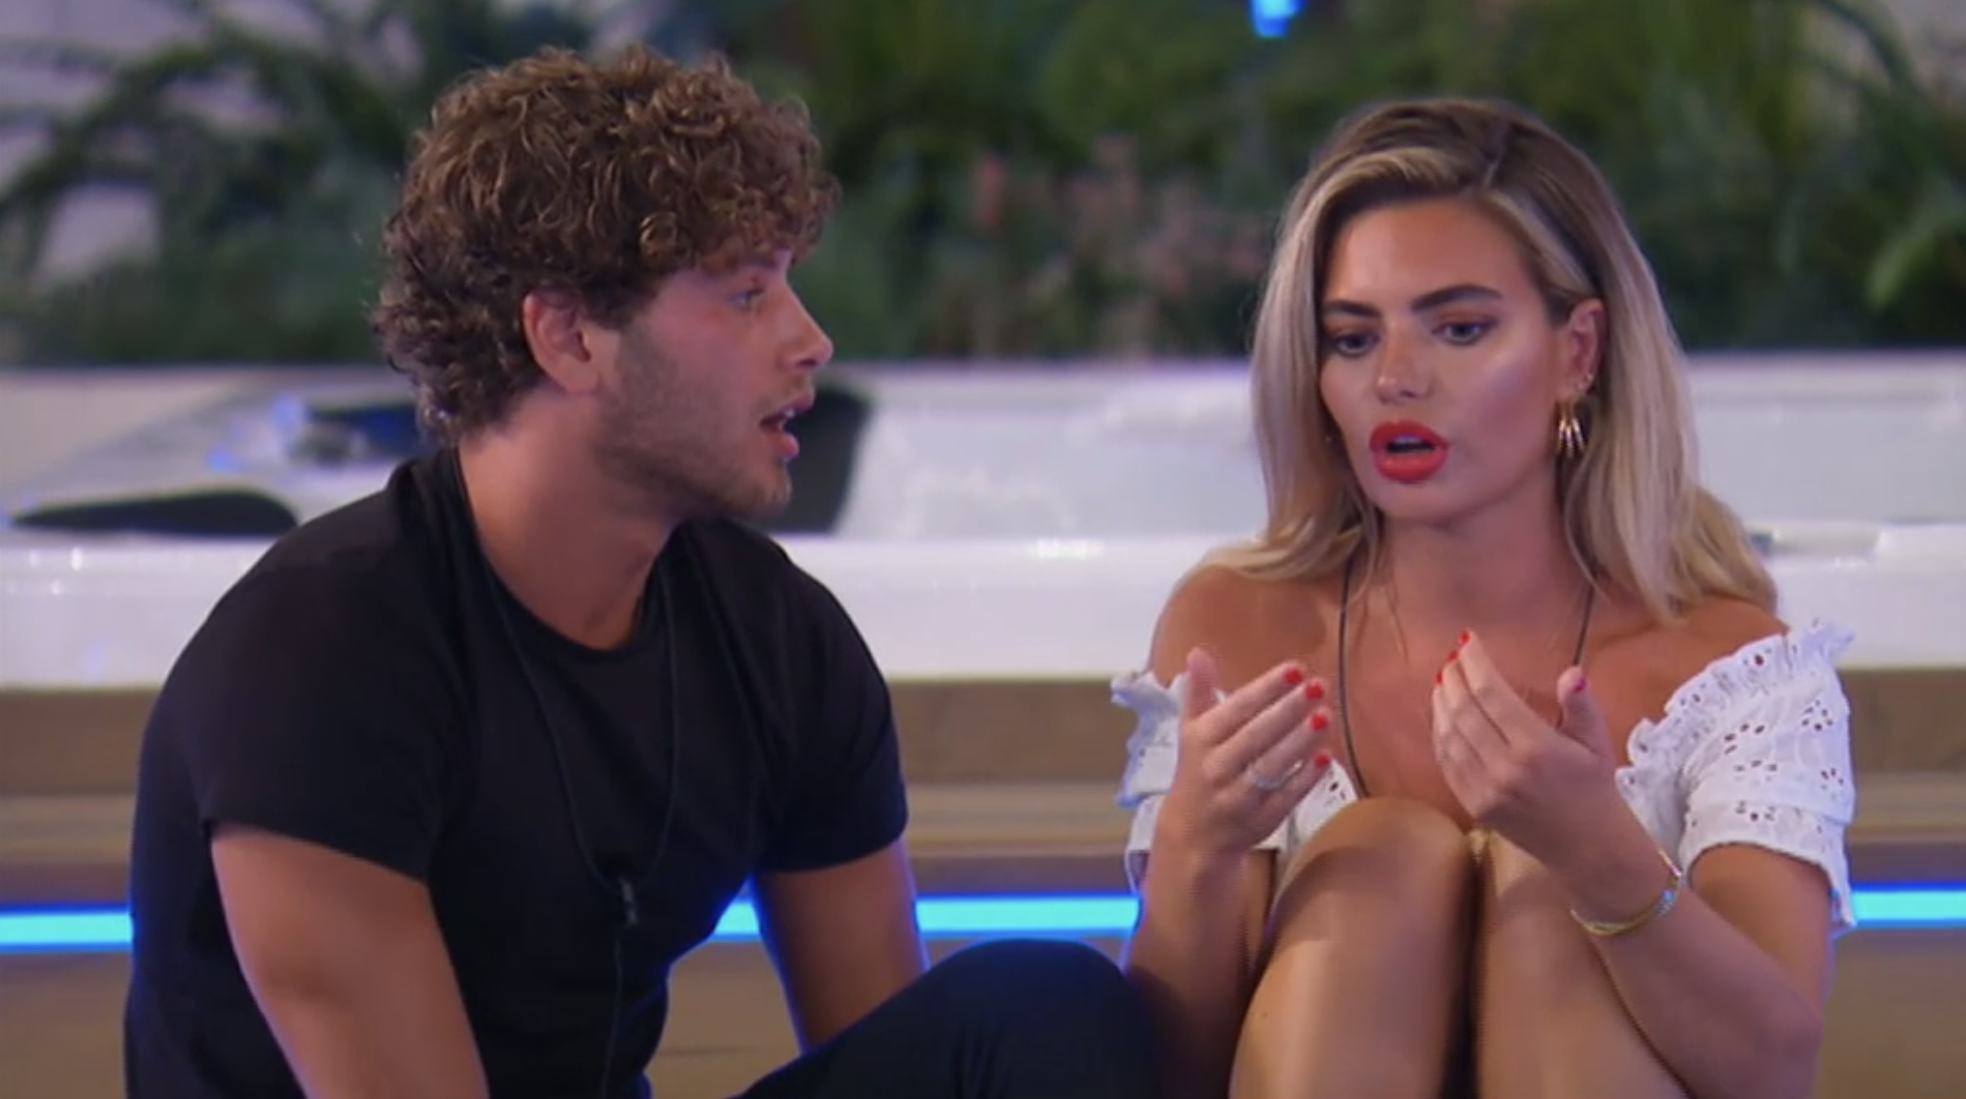 Six key moments you might've missed on last night's Love Island